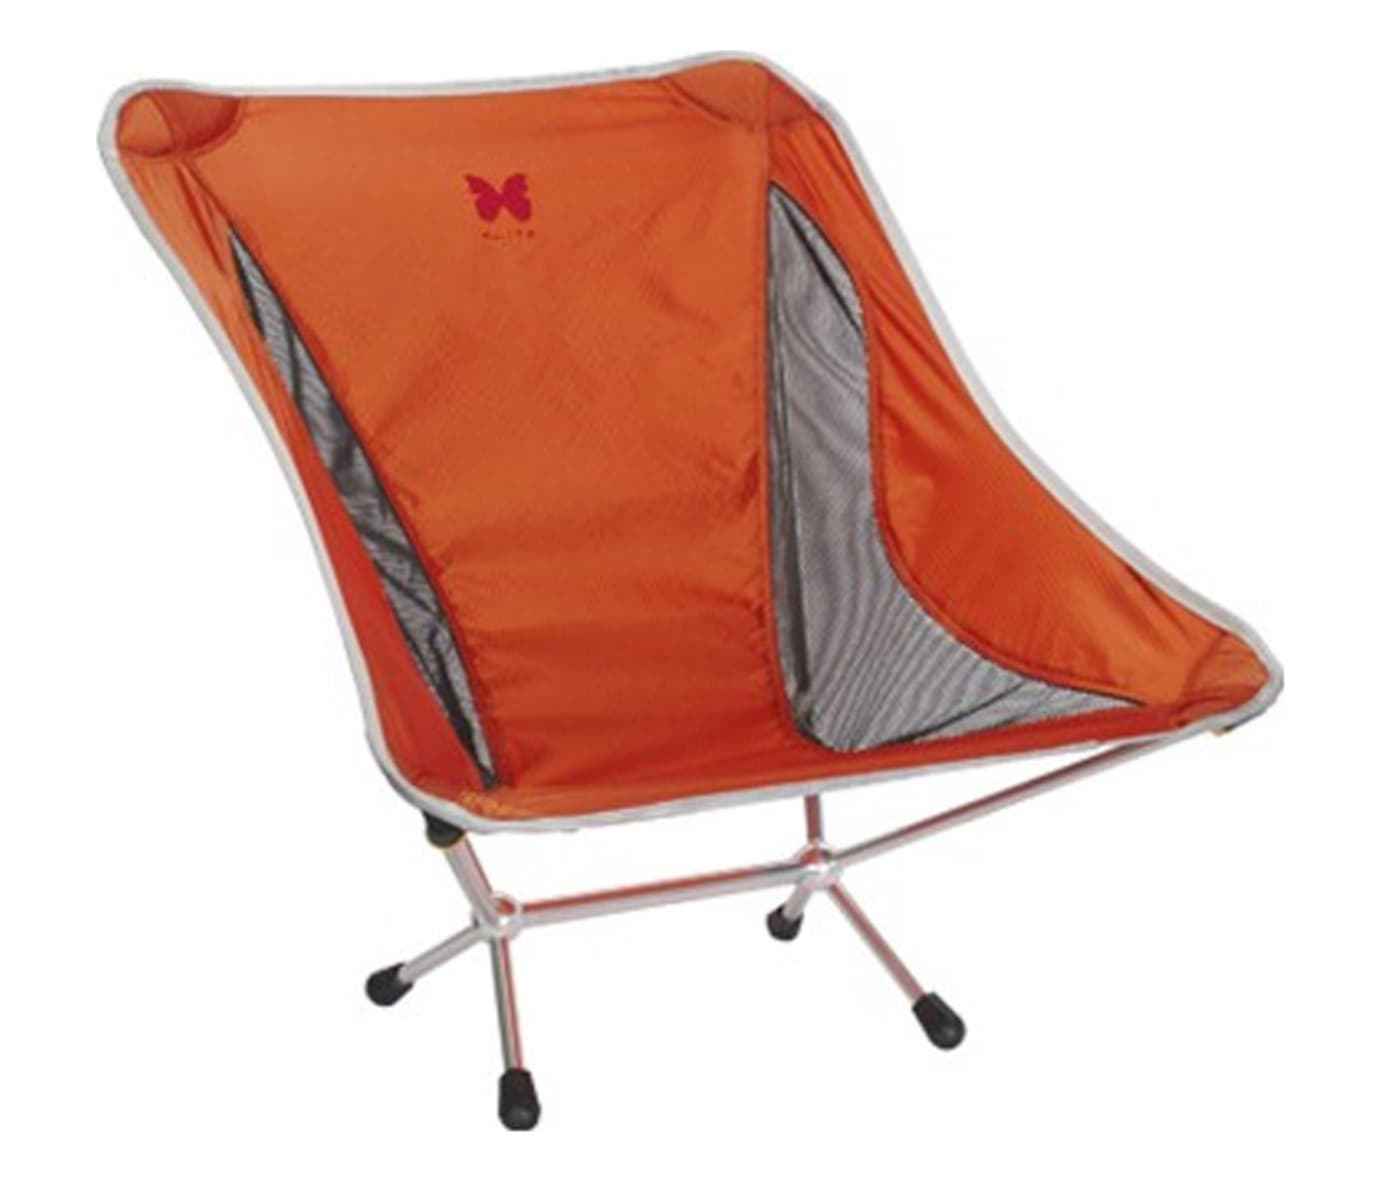 Alite Monarch Chair Alite Mantis Camping Chair Jupiter Orange